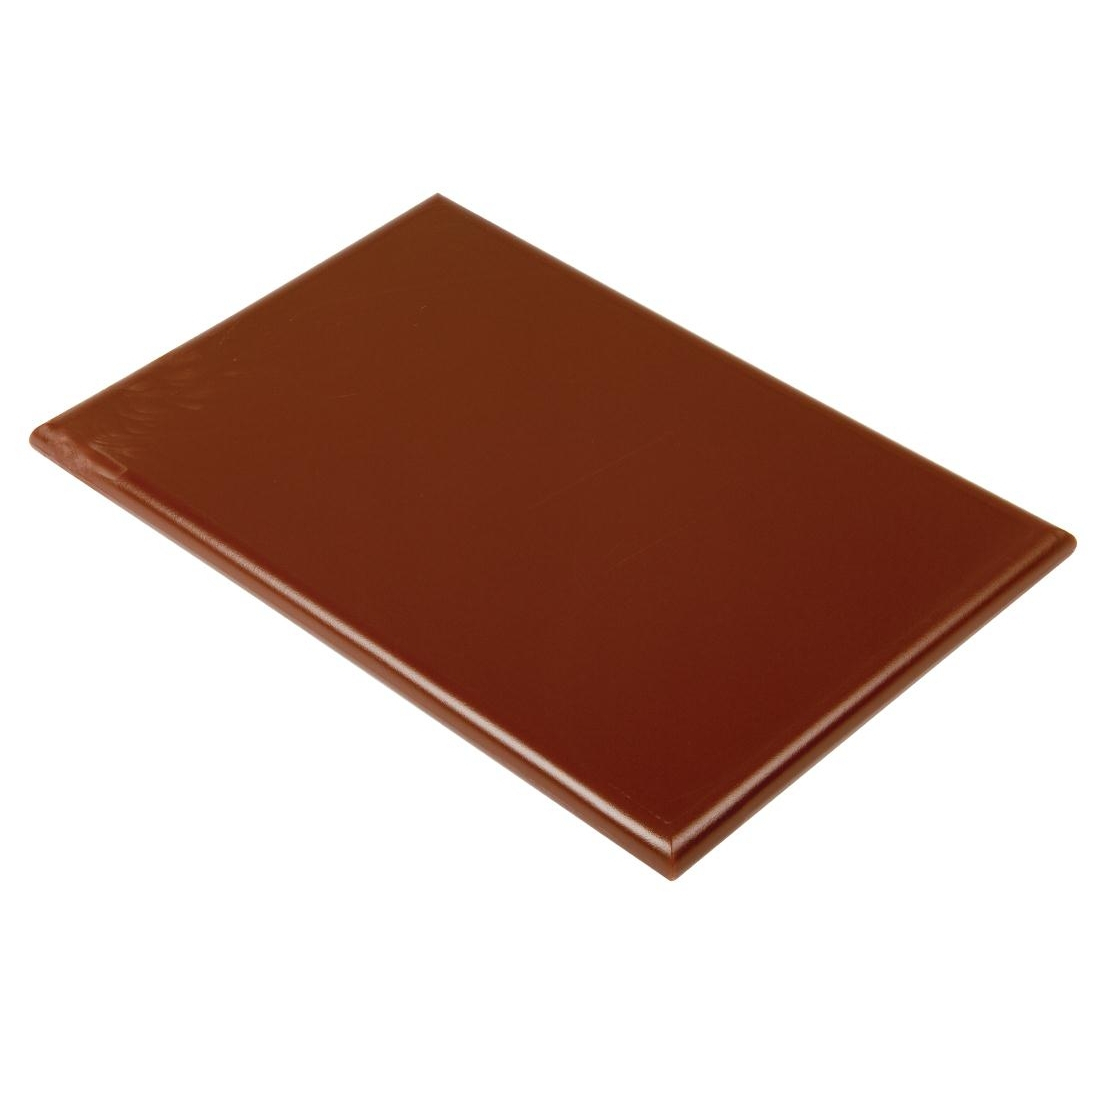 Hygiplas Extra Thick High Density Brown Chopping Board